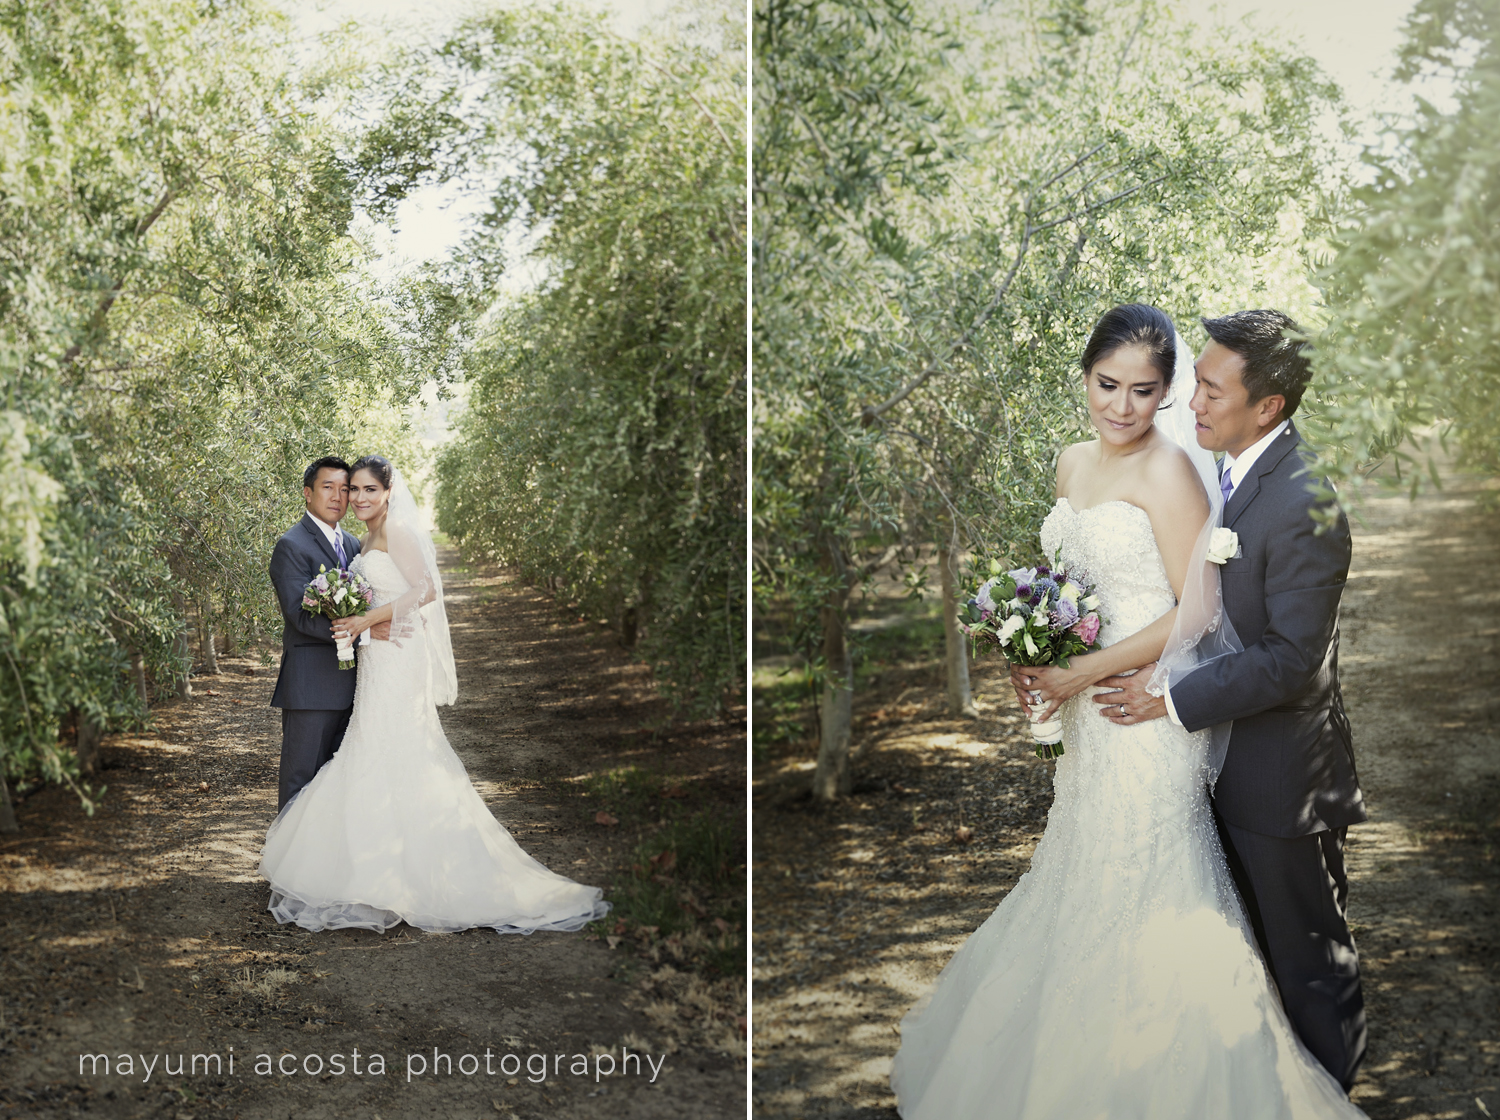 Sacramento Wedding Photography Rustic Style At Taber Ranch In Capey CA